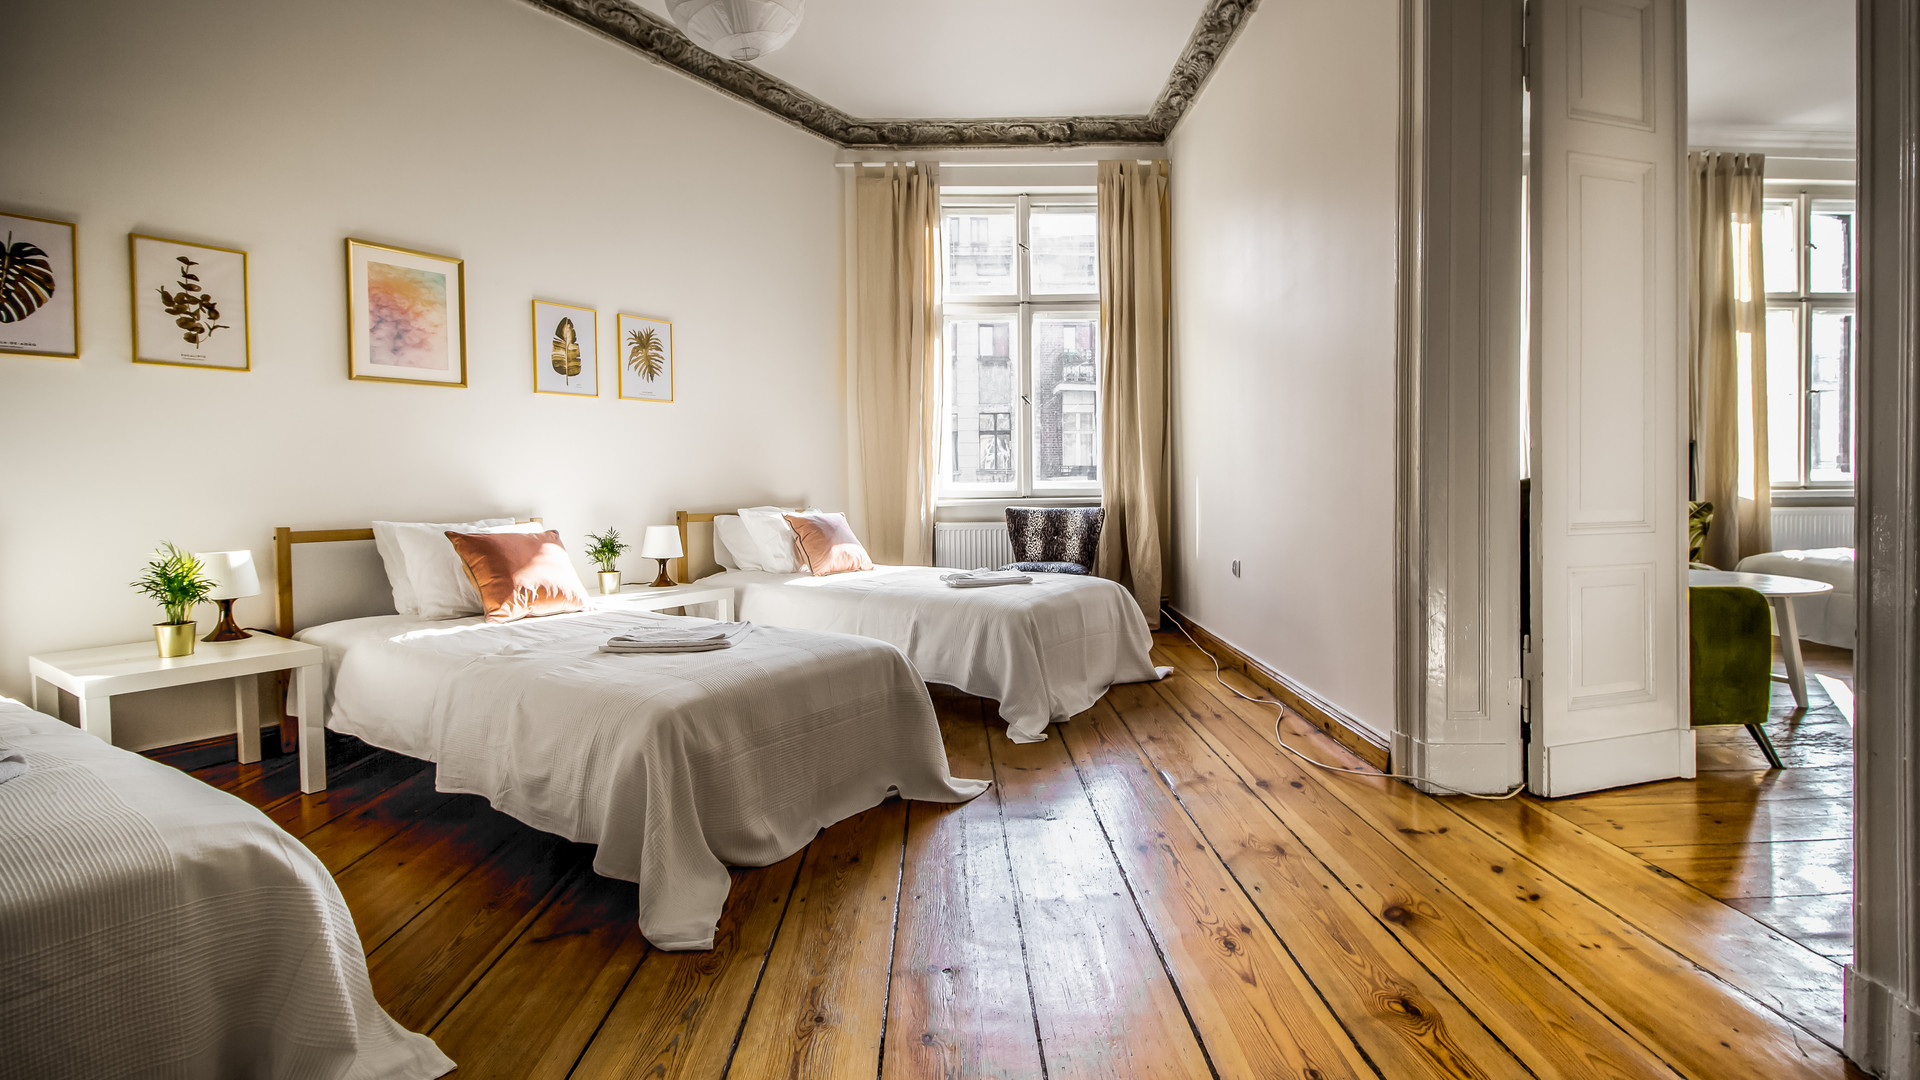 Apartmemt for 5 persons Poznan Old Town.jpg